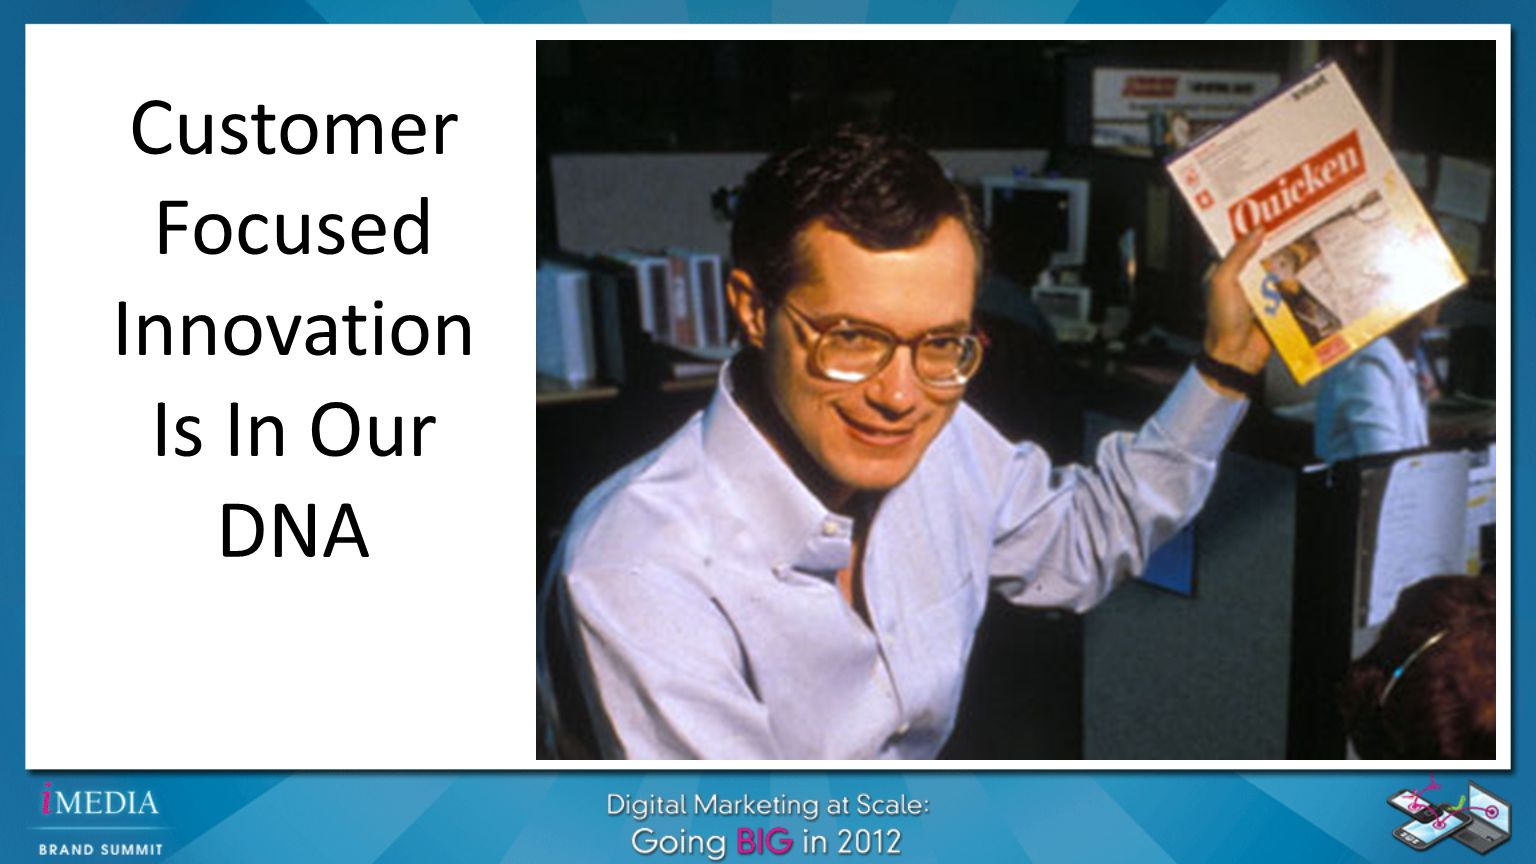 Customer Focused Innovation Is In Our DNA